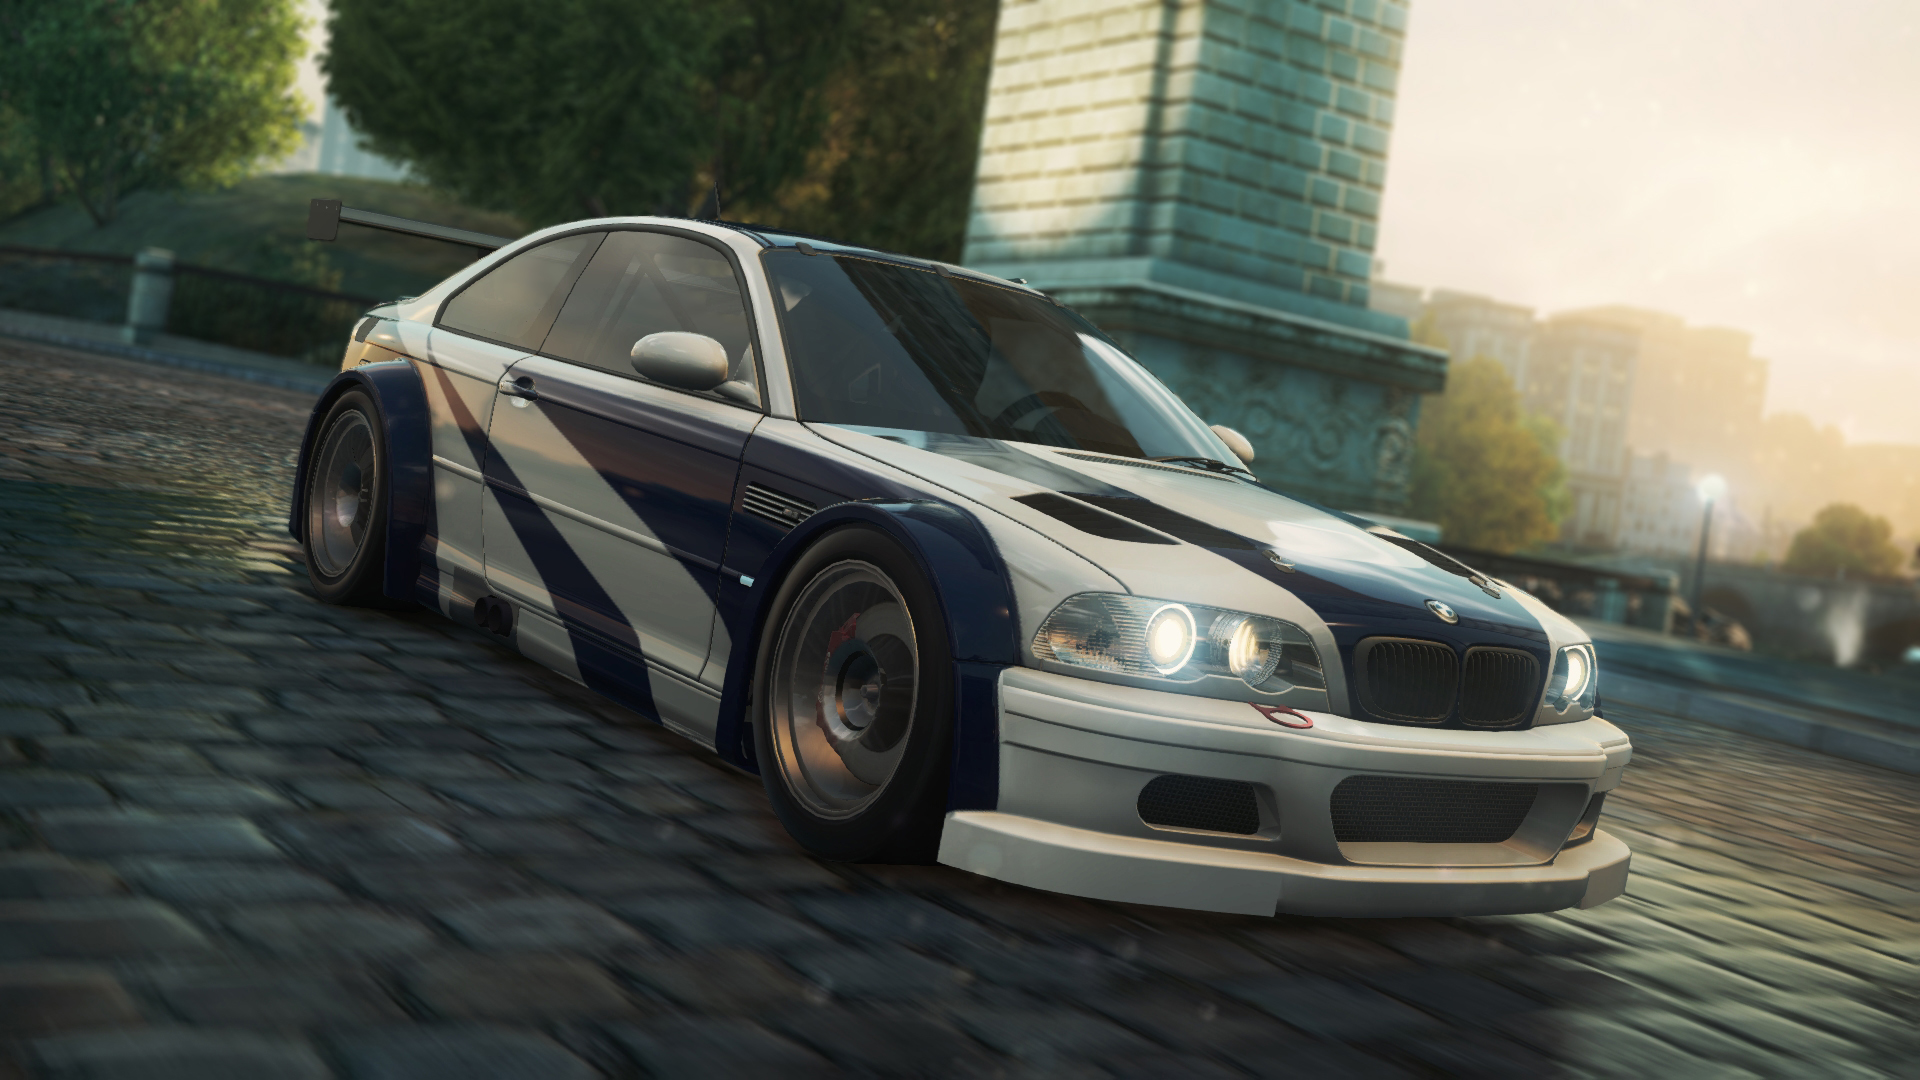 Bmw M3 Gtr Gt E46 Need For Speed Wiki Fandom